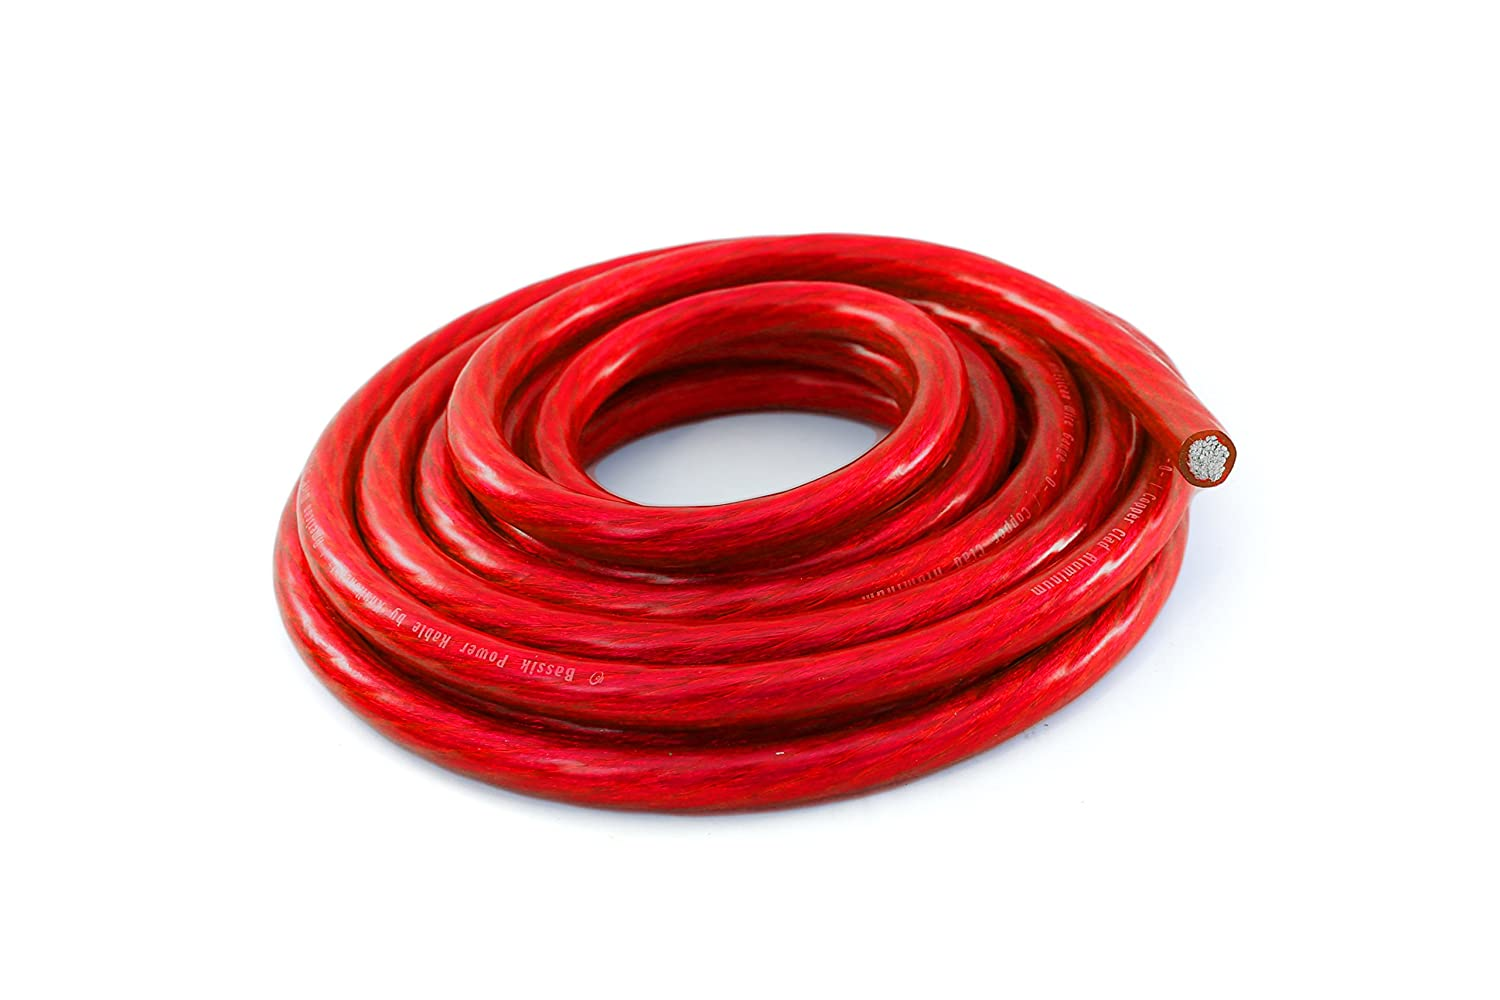 Ground Wire Cable Red 25 foot coil BK-PWR8R-25 KnuKonceptz Bassik 8 Gauge Power